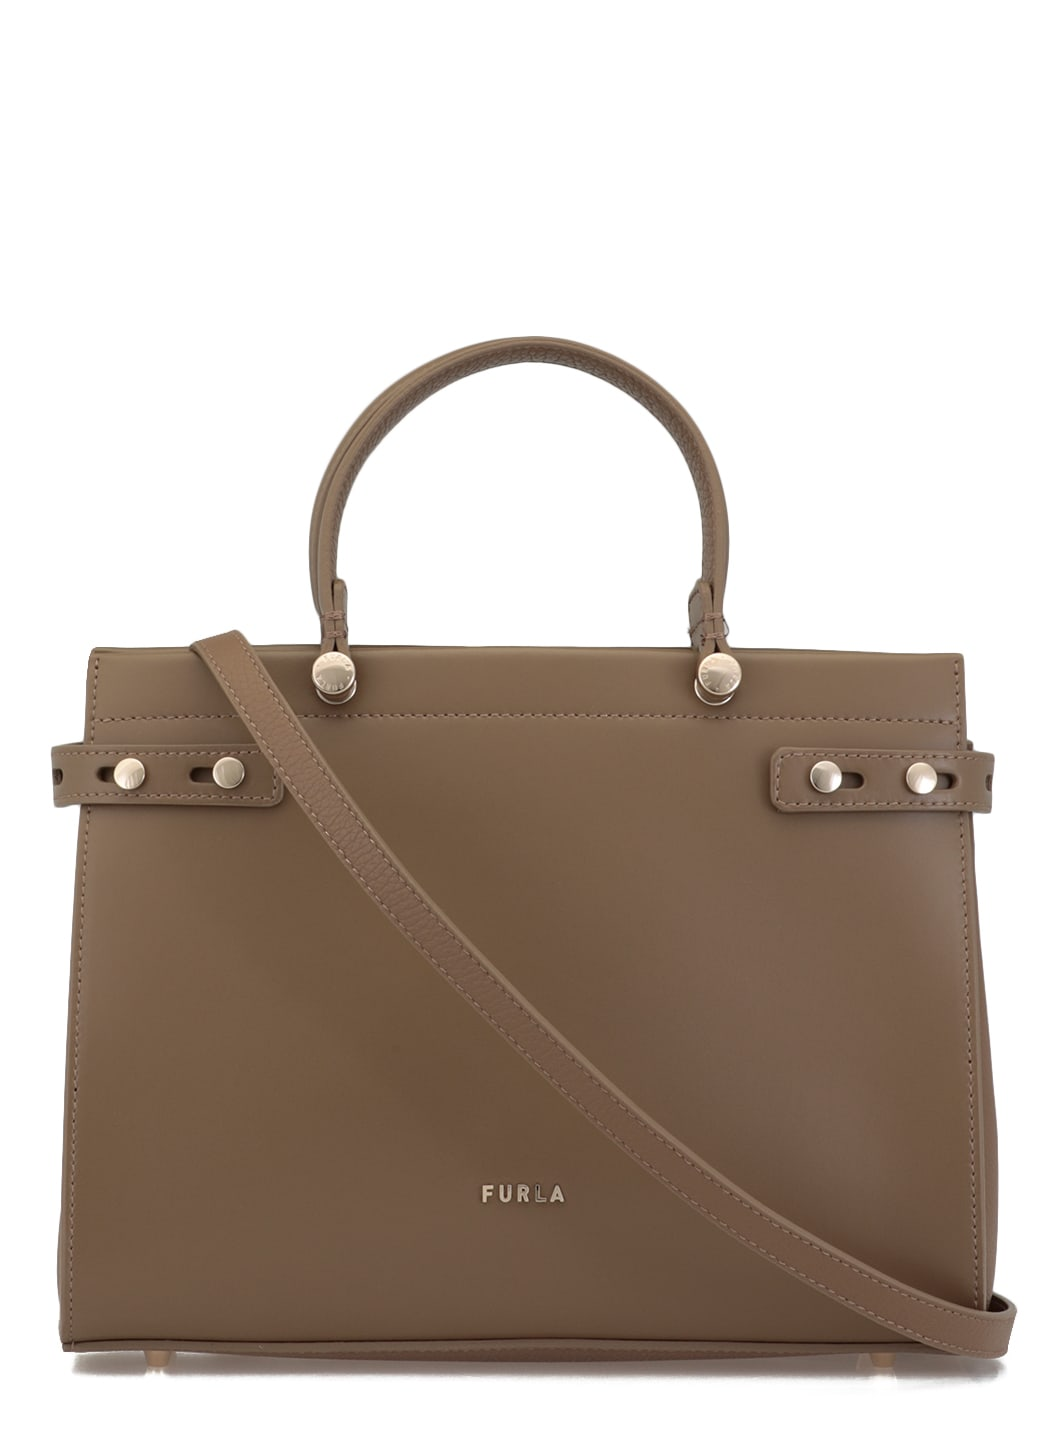 Furla LADY TOTE BAG